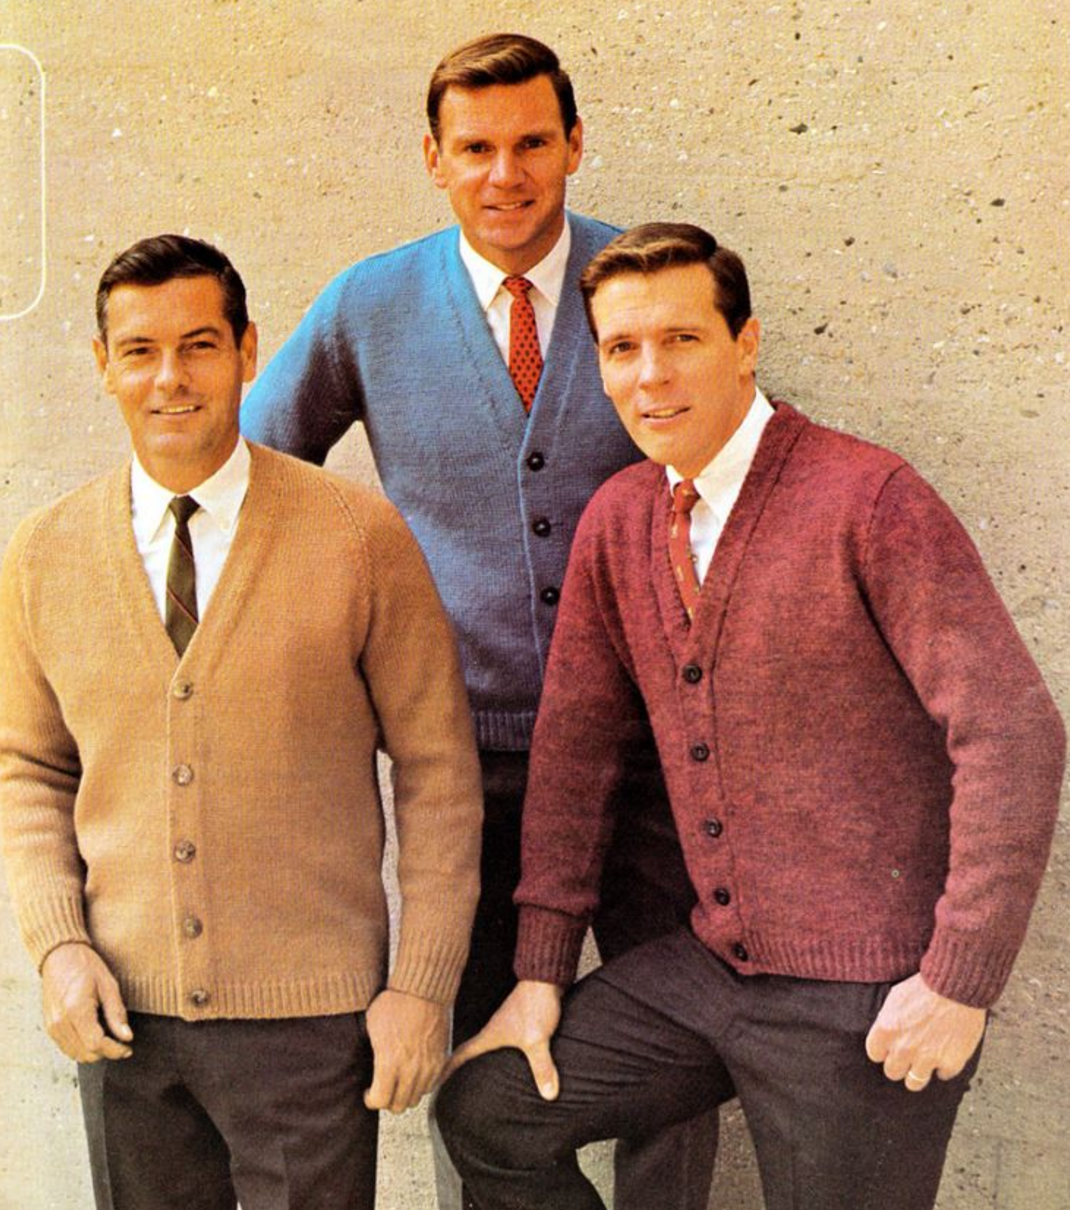 60 s men fashion-Love those 60s colors! Vintage chic Pinterest 87